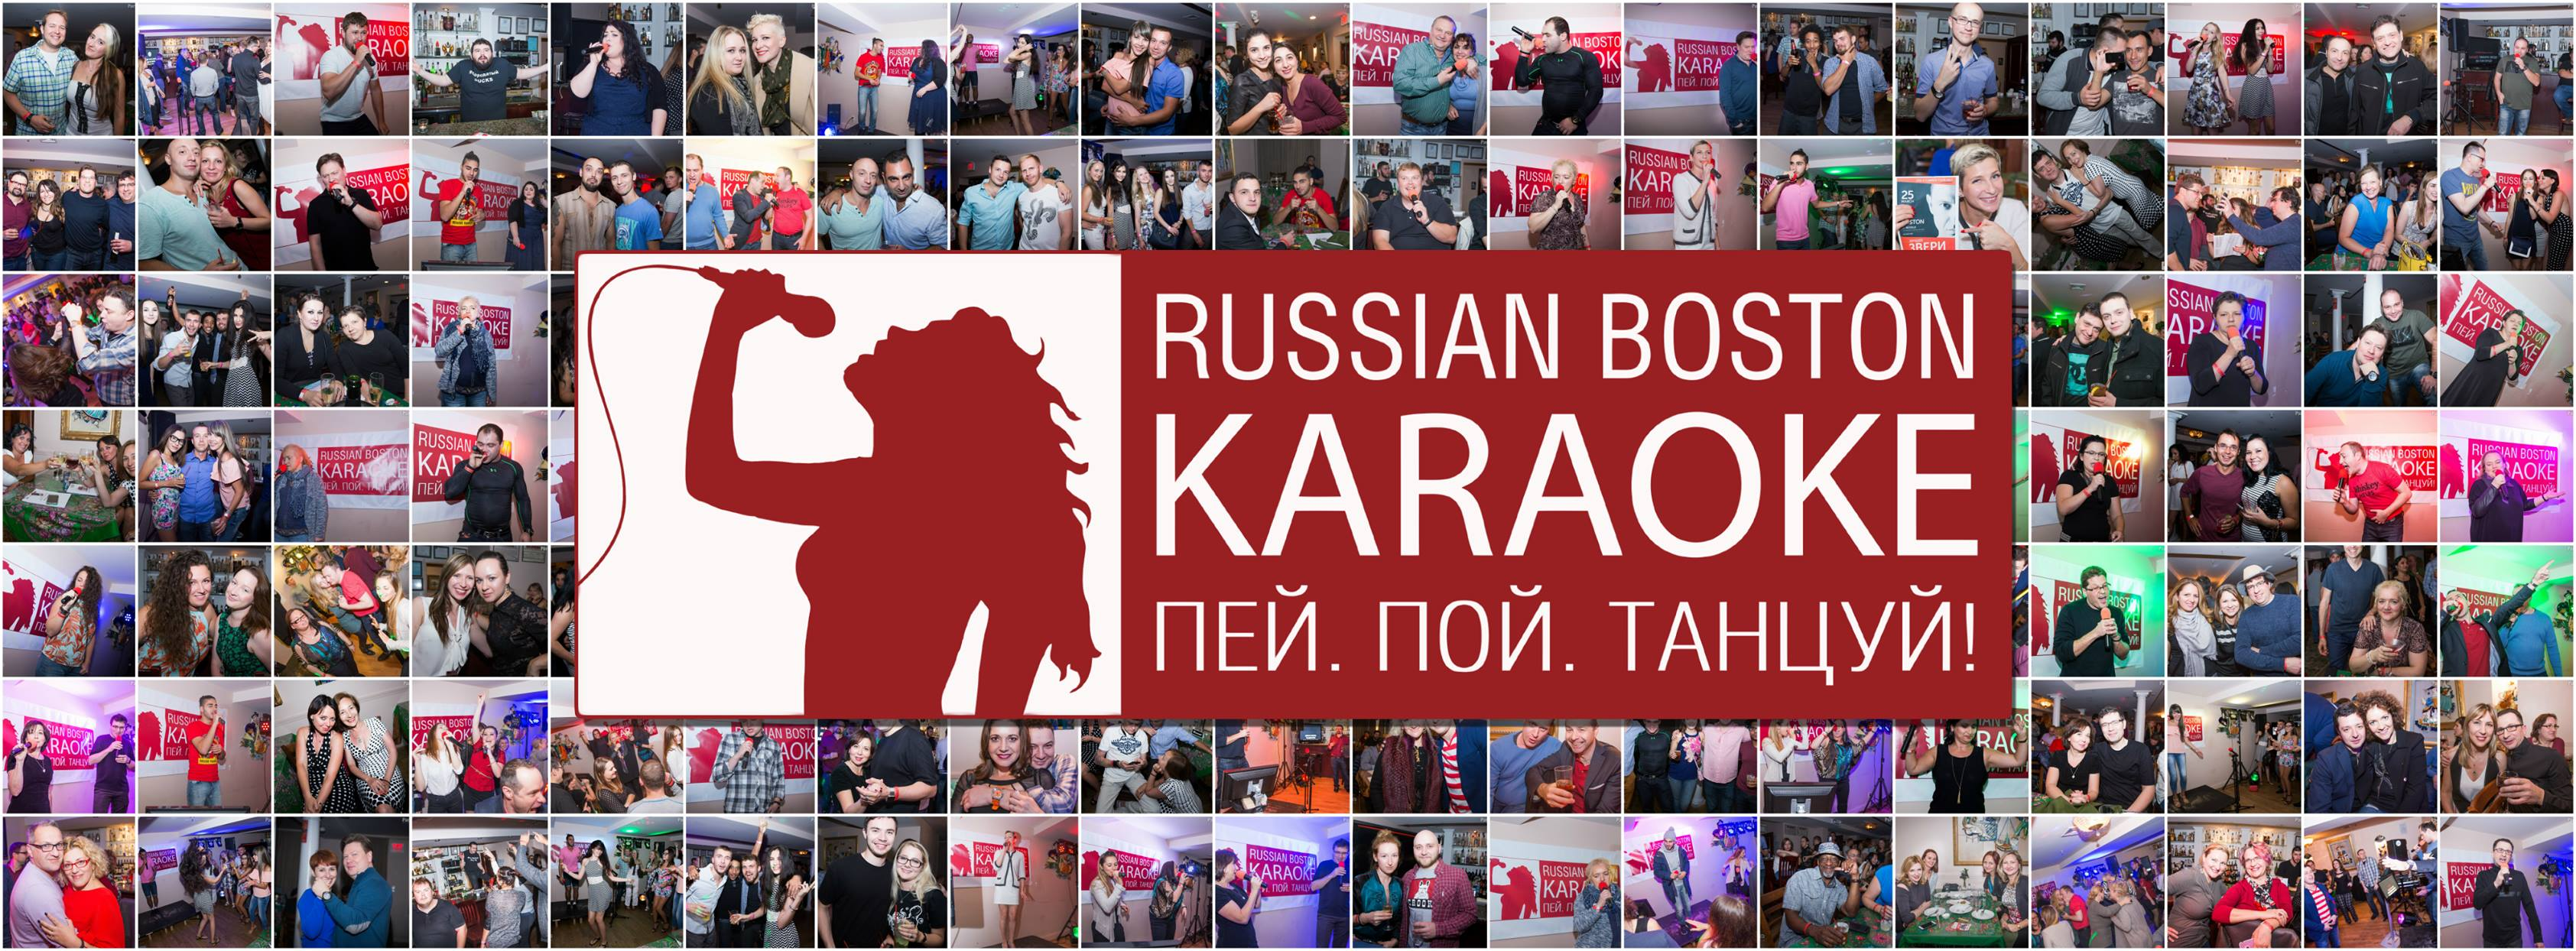 Russian Boston KARAOKE